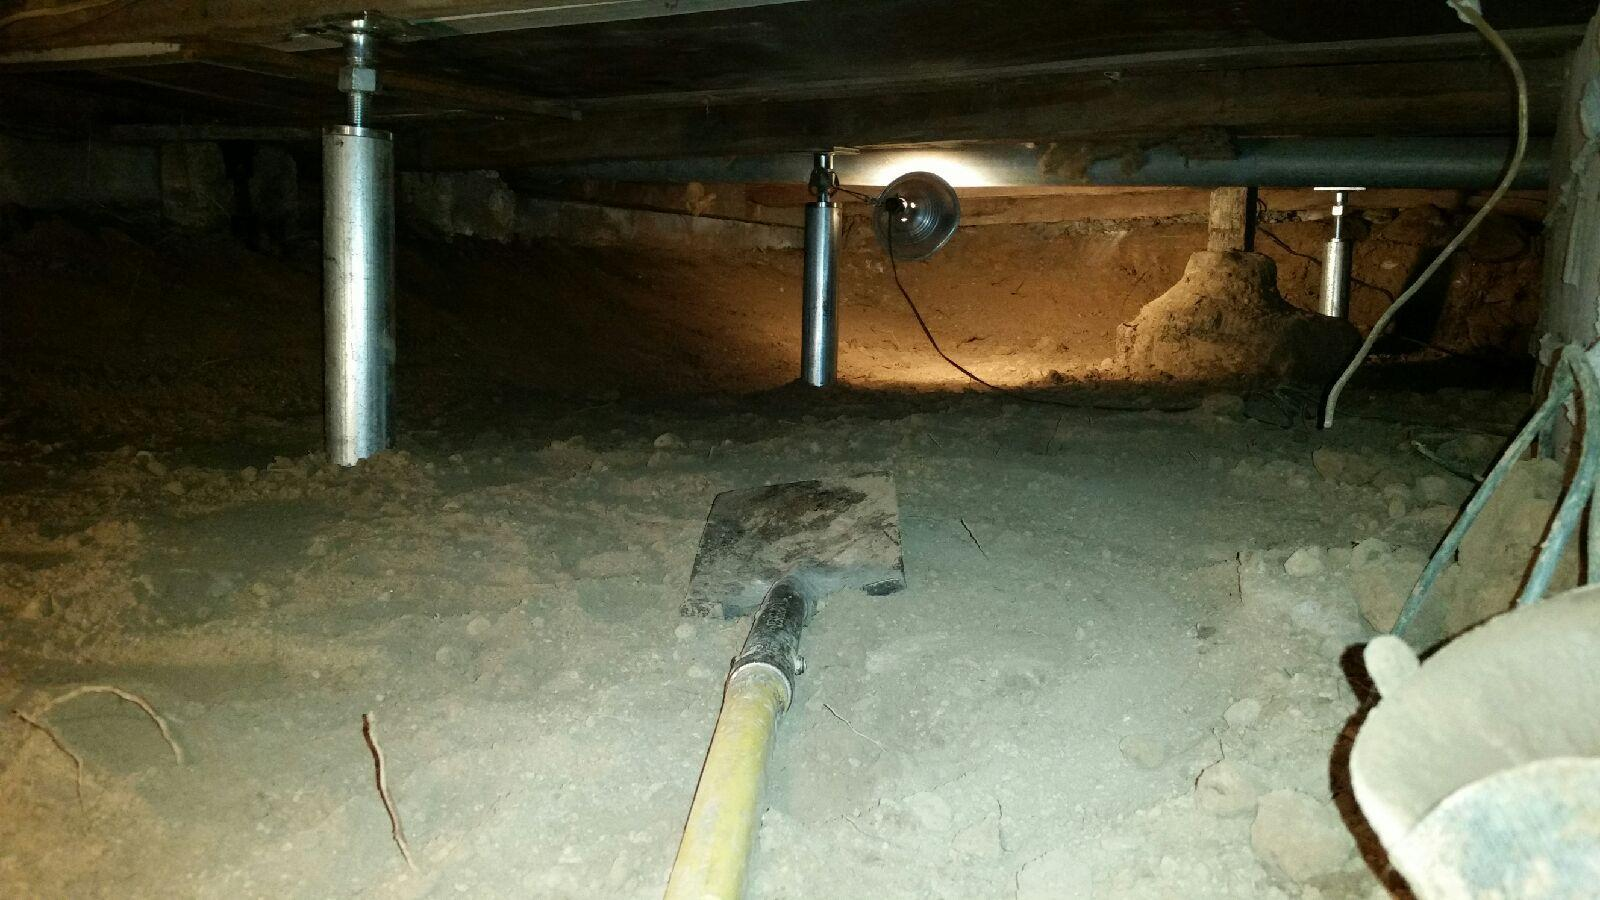 Making the crawl space more desirable